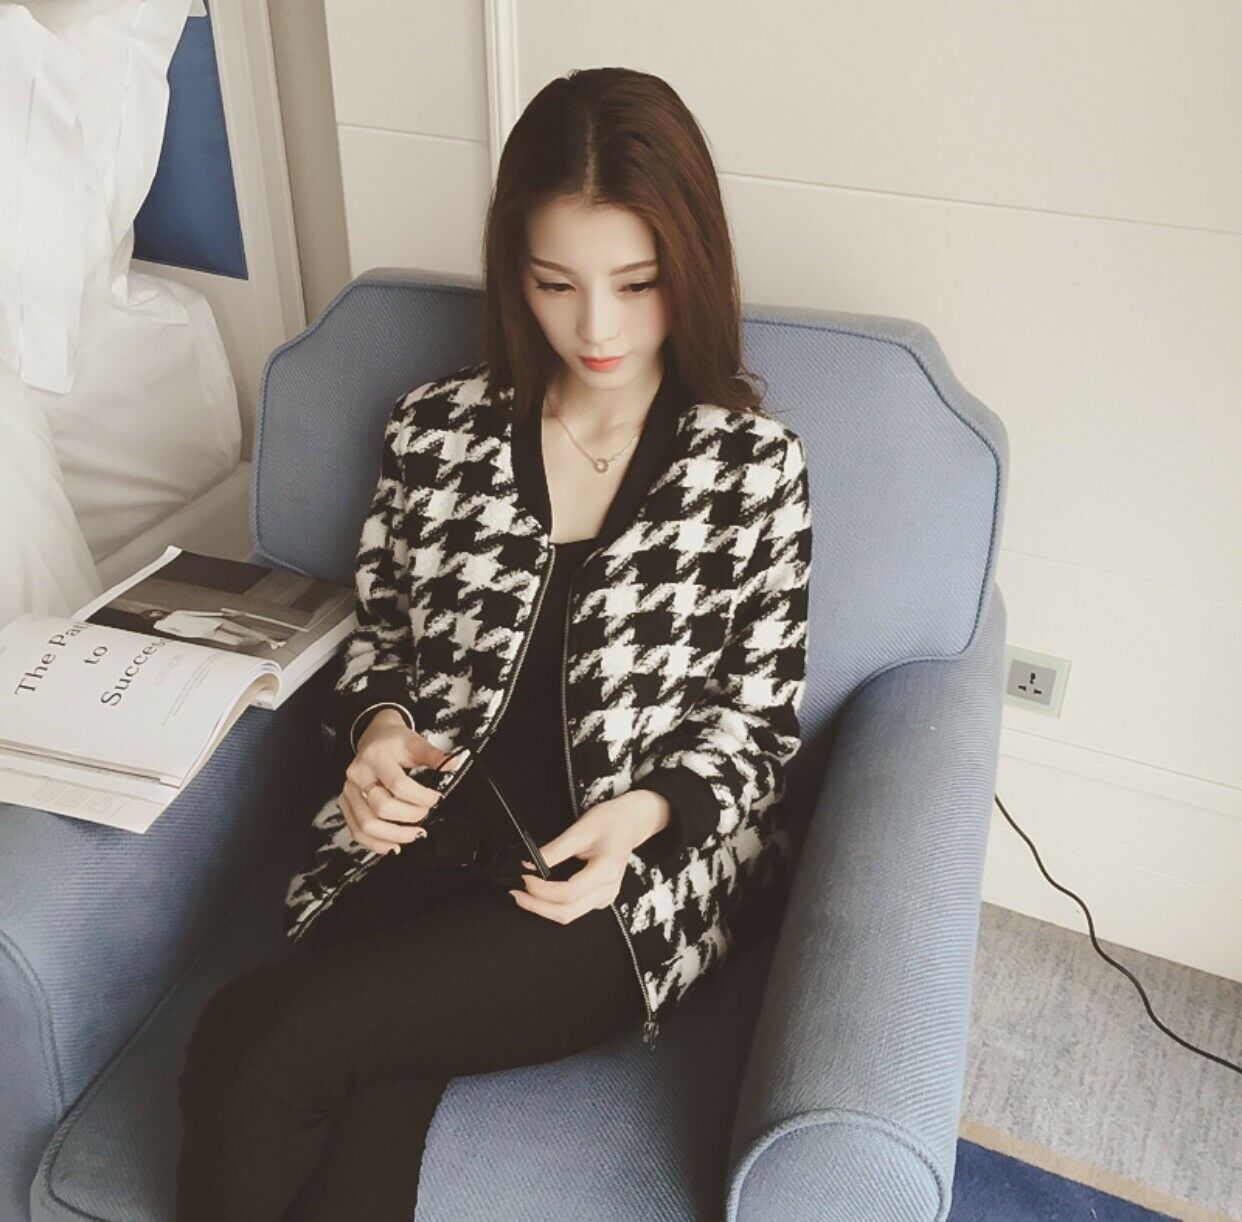 Women Fashion Jacket Black And White Mix Color Lady School Young Beauty